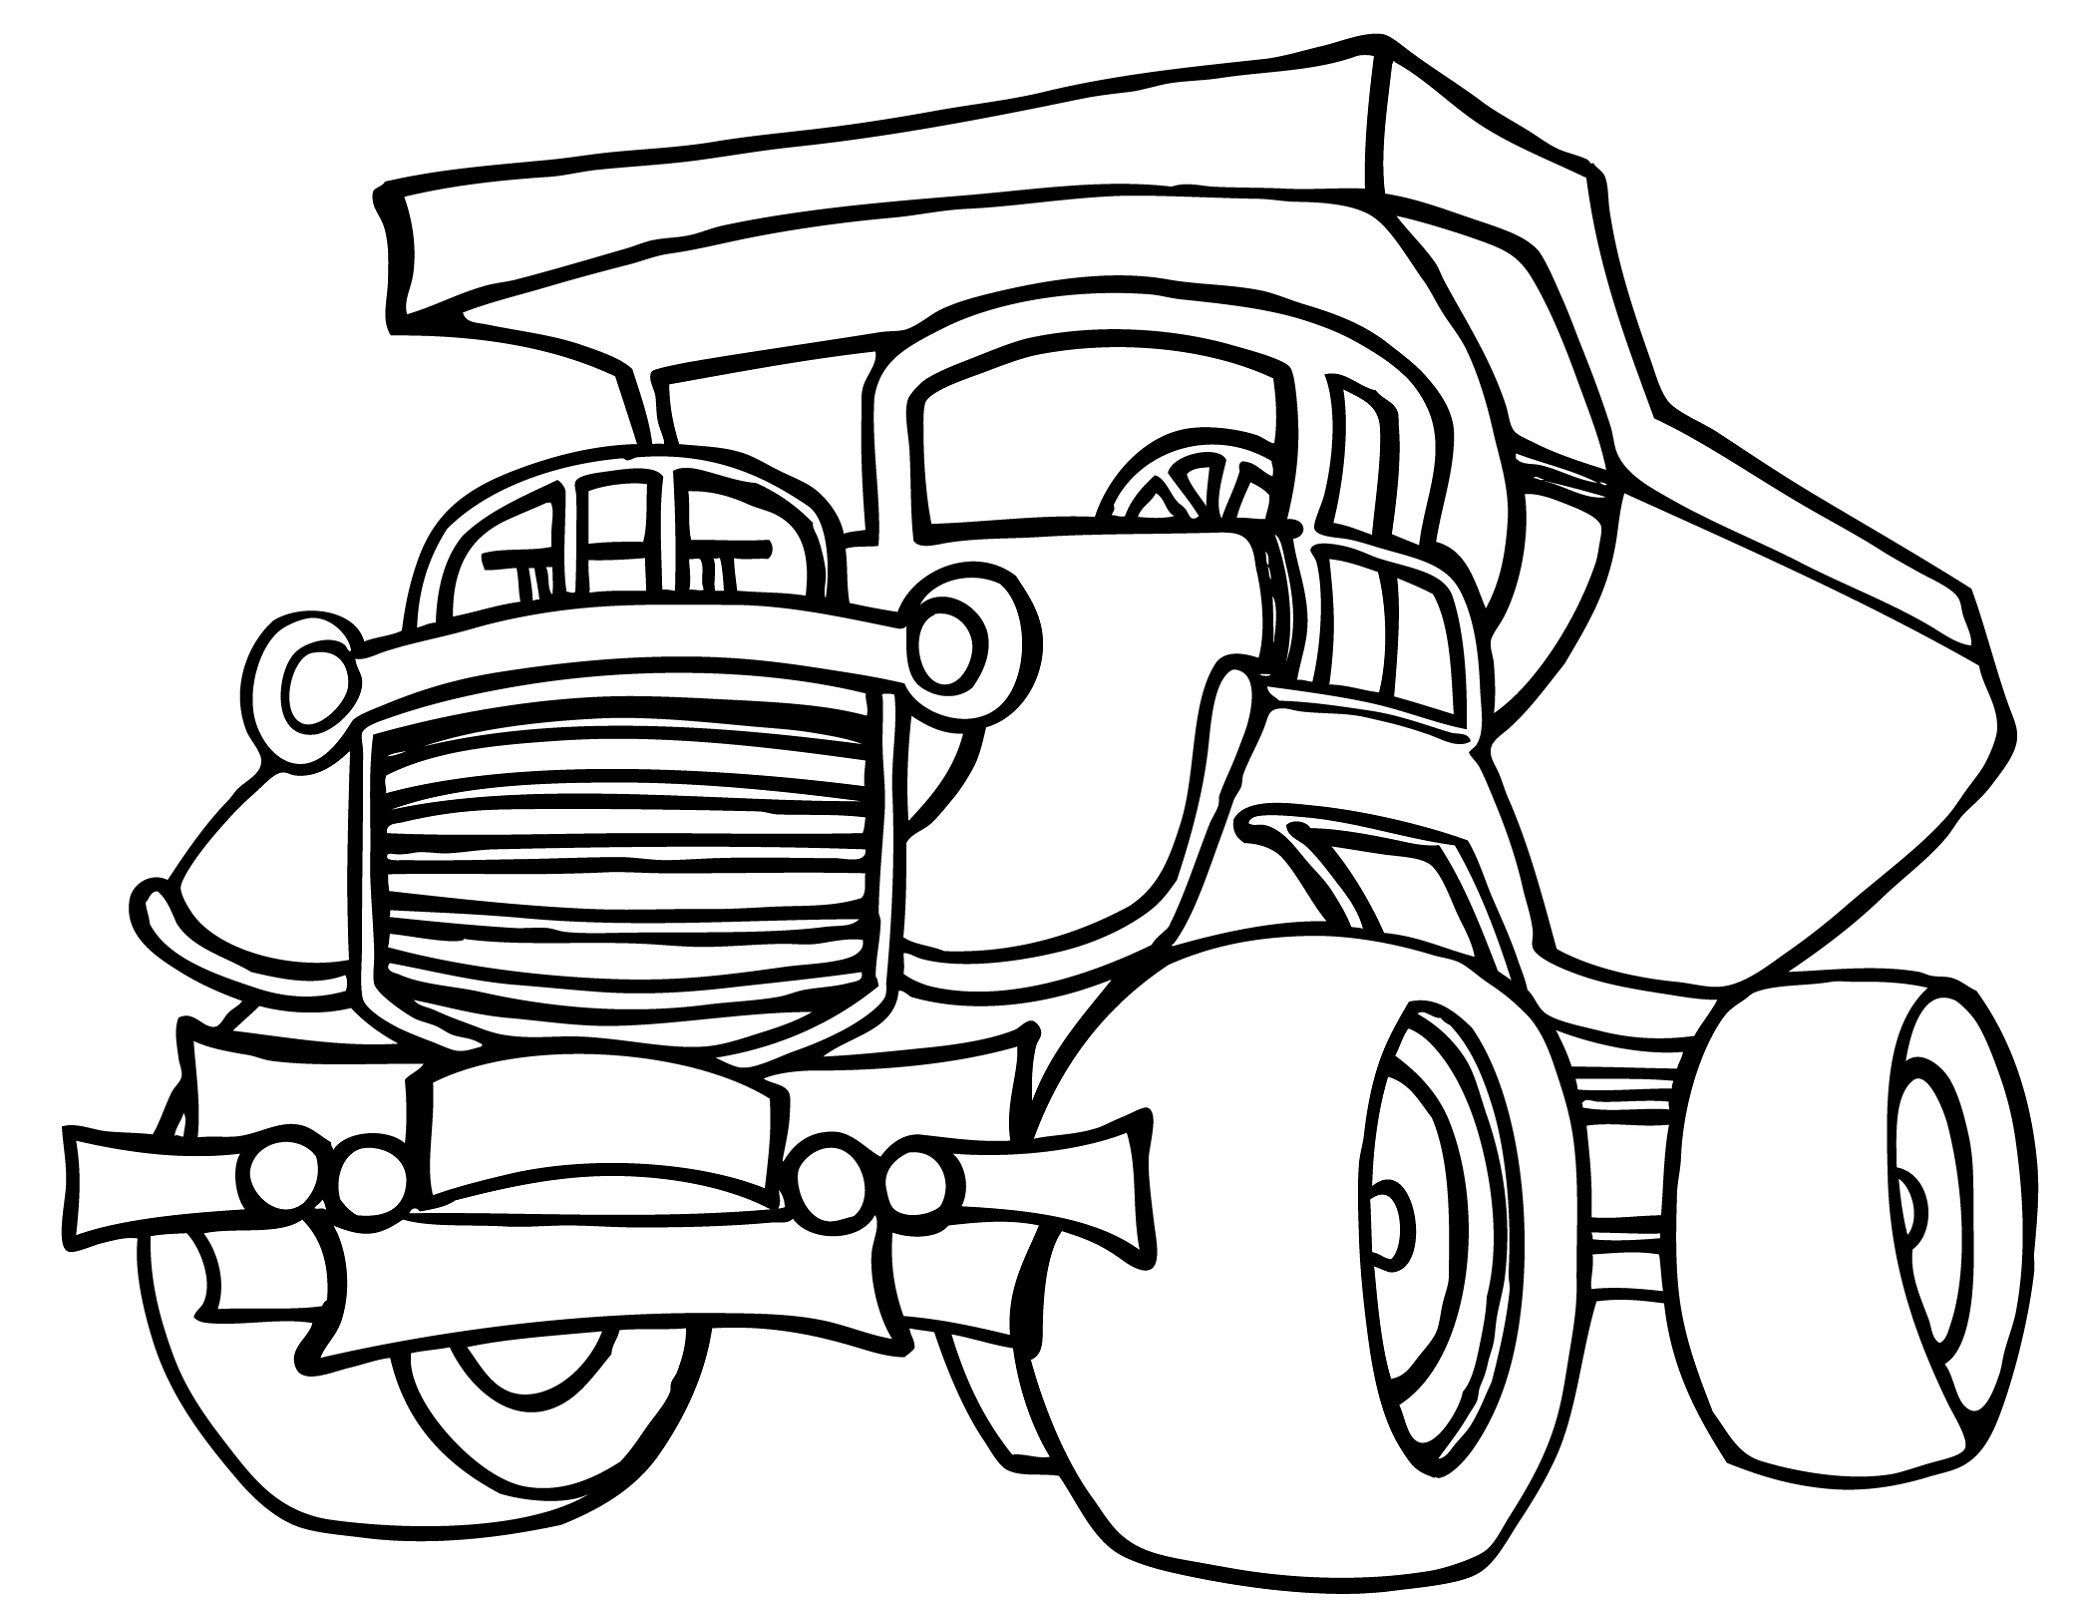 Dump Truck Pictures For Kids Kids Learning Activity Monster Truck Coloring Pages Truck Coloring Pages Coloring Pages For Kids